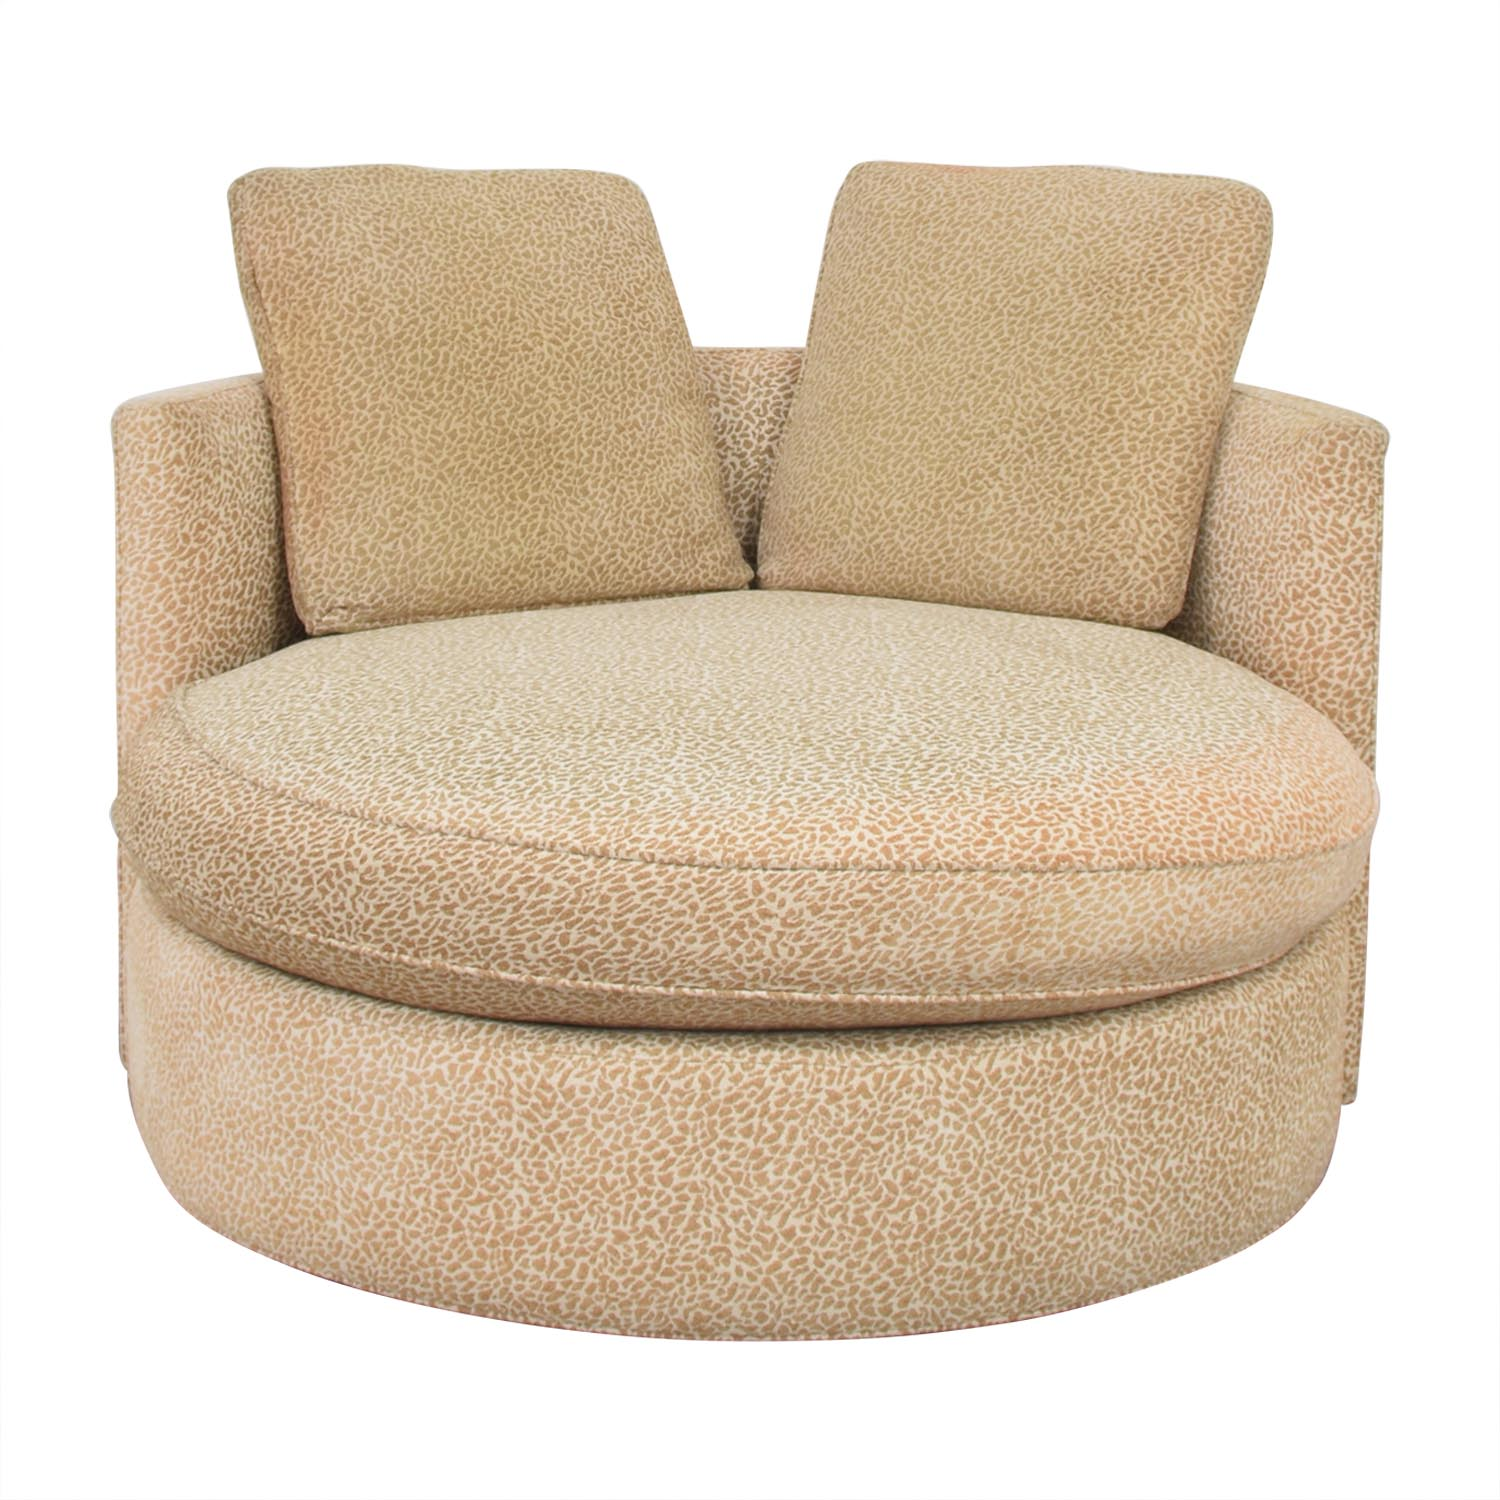 Macy's Macy's Circle Swivel Chair dimensions